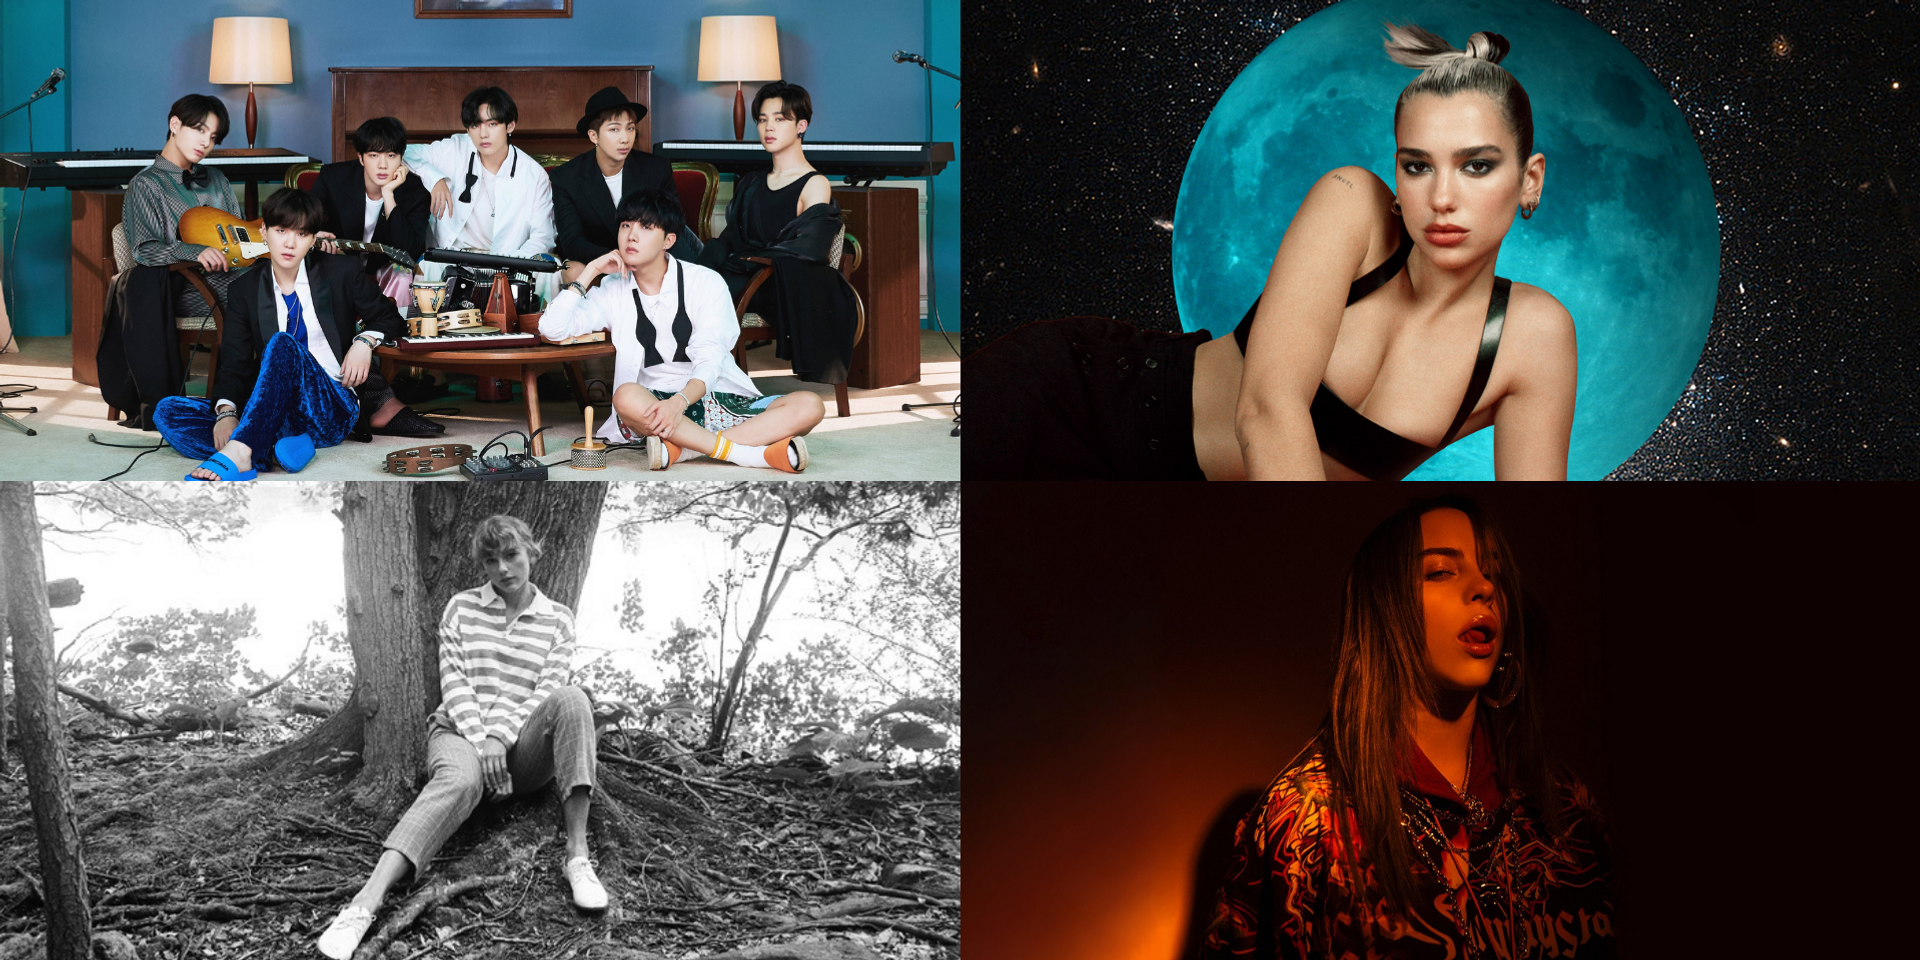 63rd Grammy Awards announce nominees, Taylor Swift, BTS, Dua Lipa, Billie Eilish, and more - see complete list